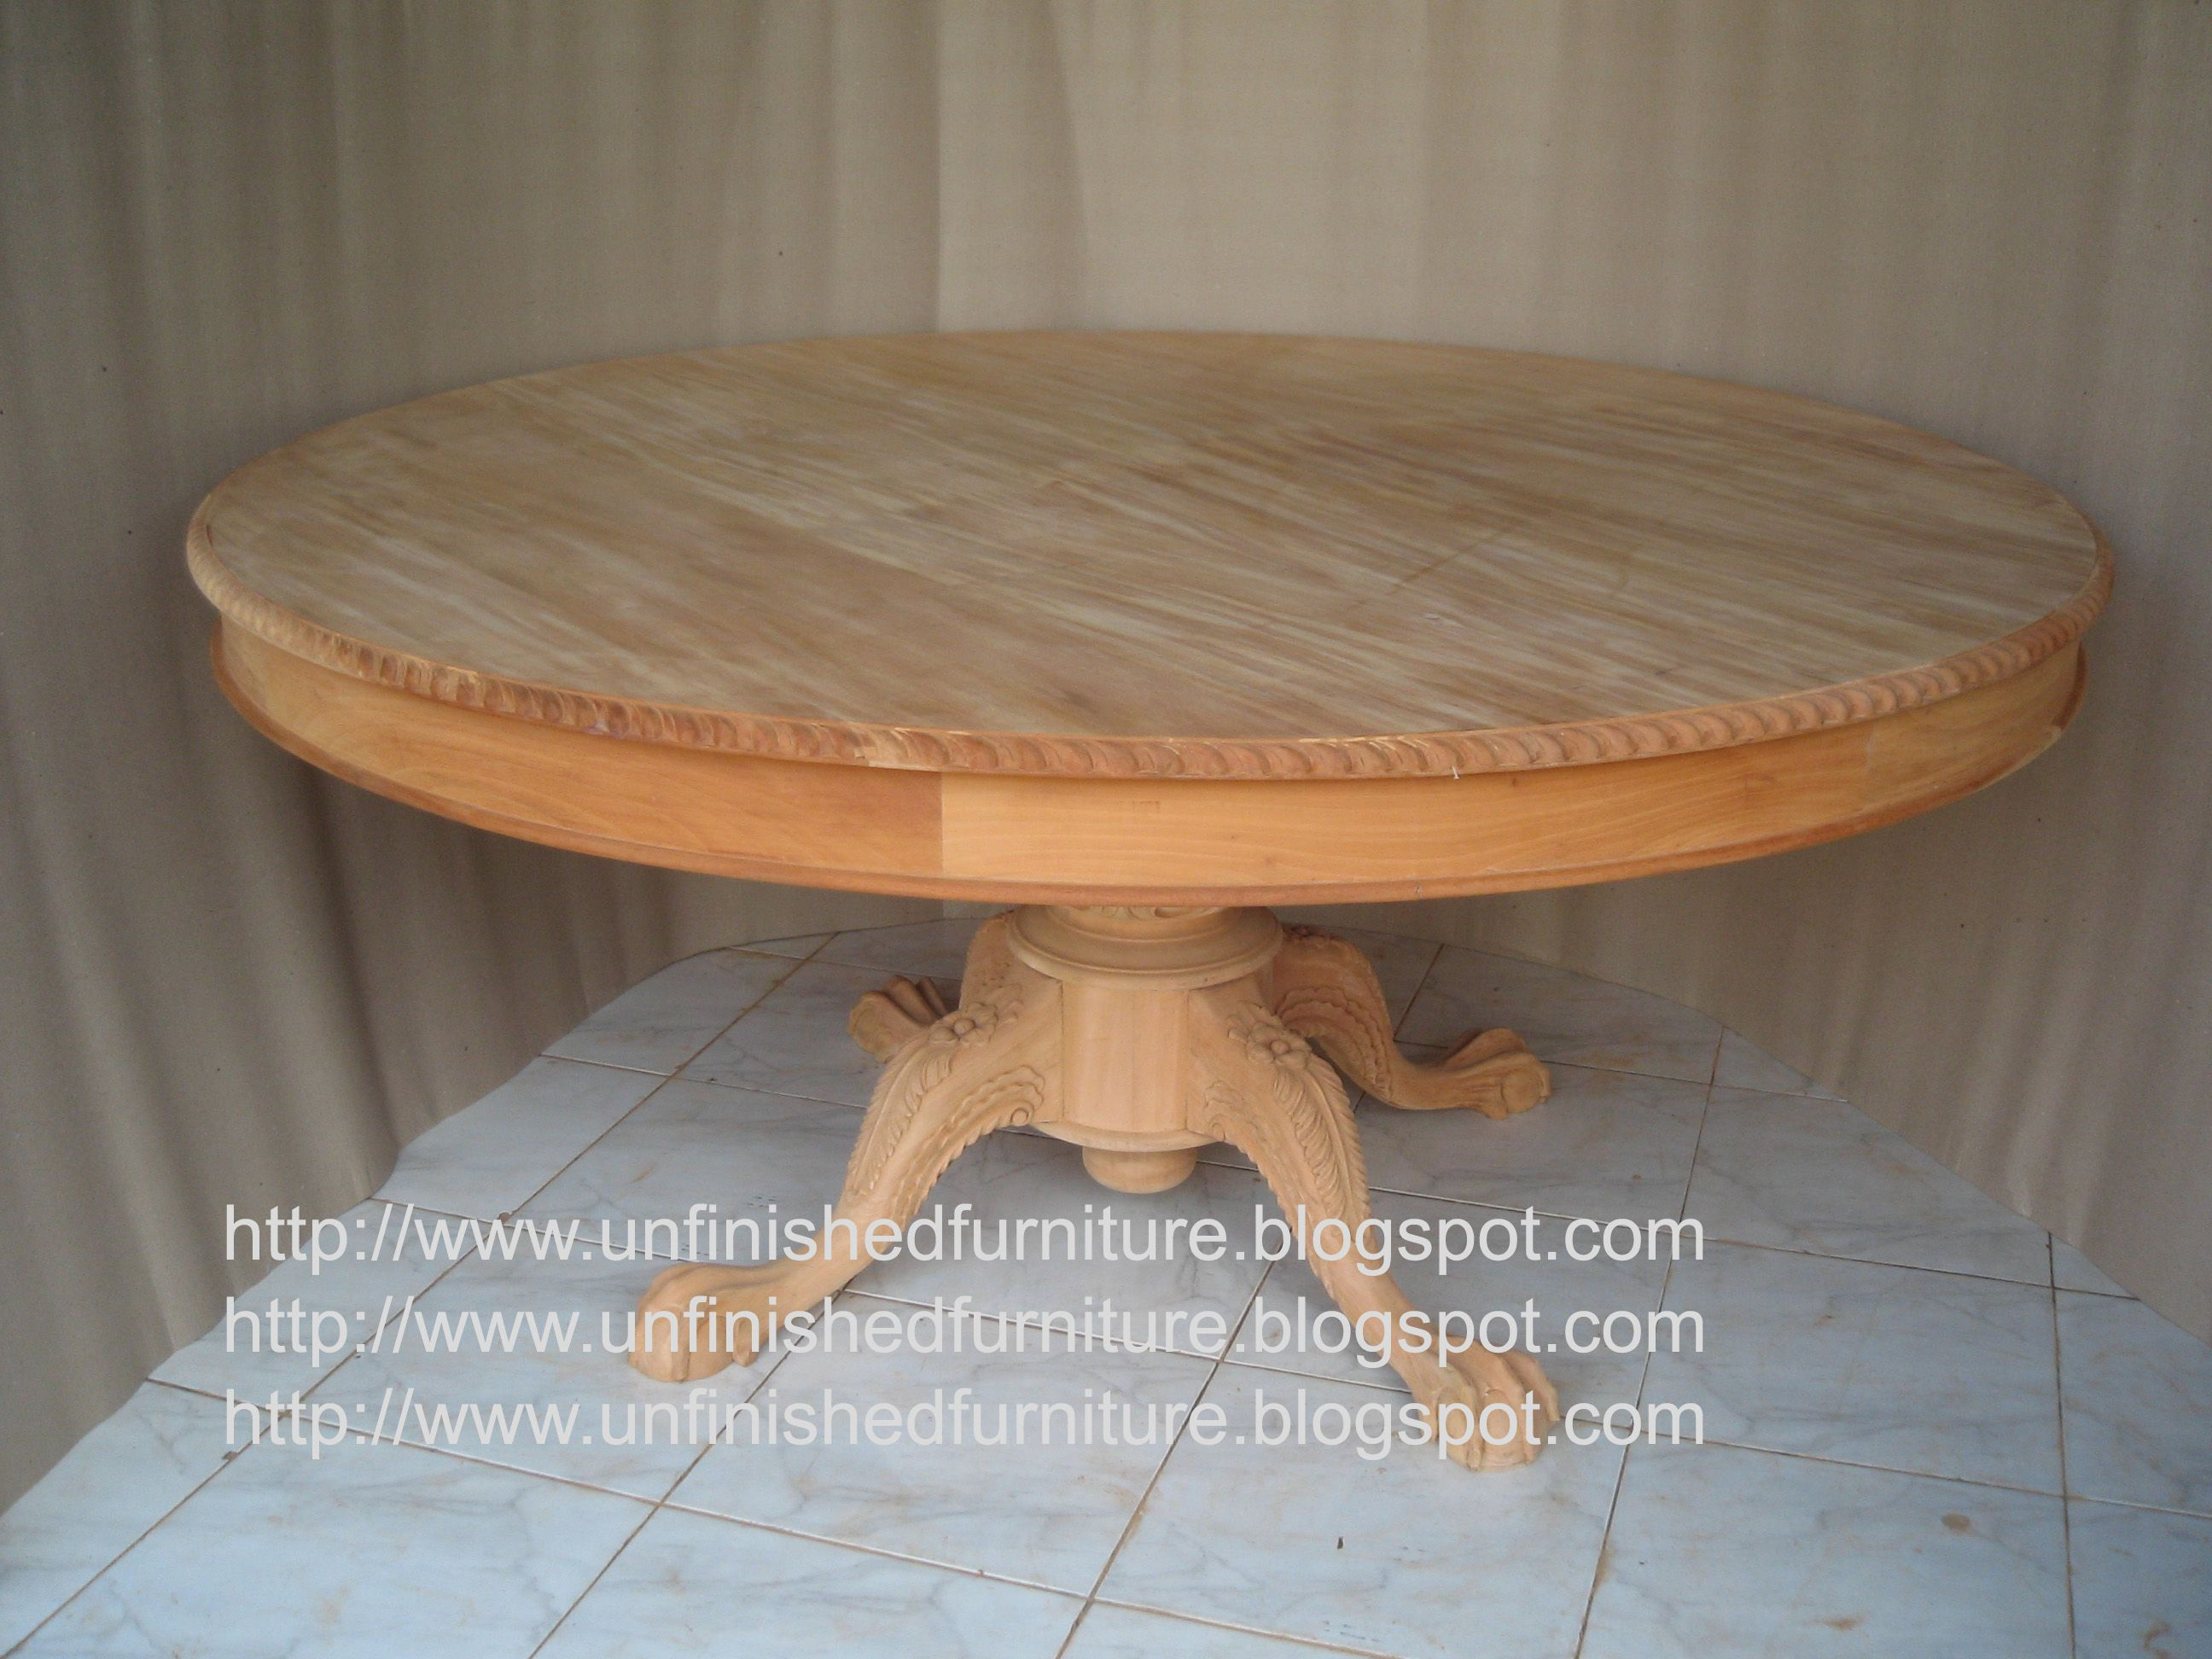 Unfinished mahogany furniture round chippendale dining table made of fine solid kiln dry mahogany